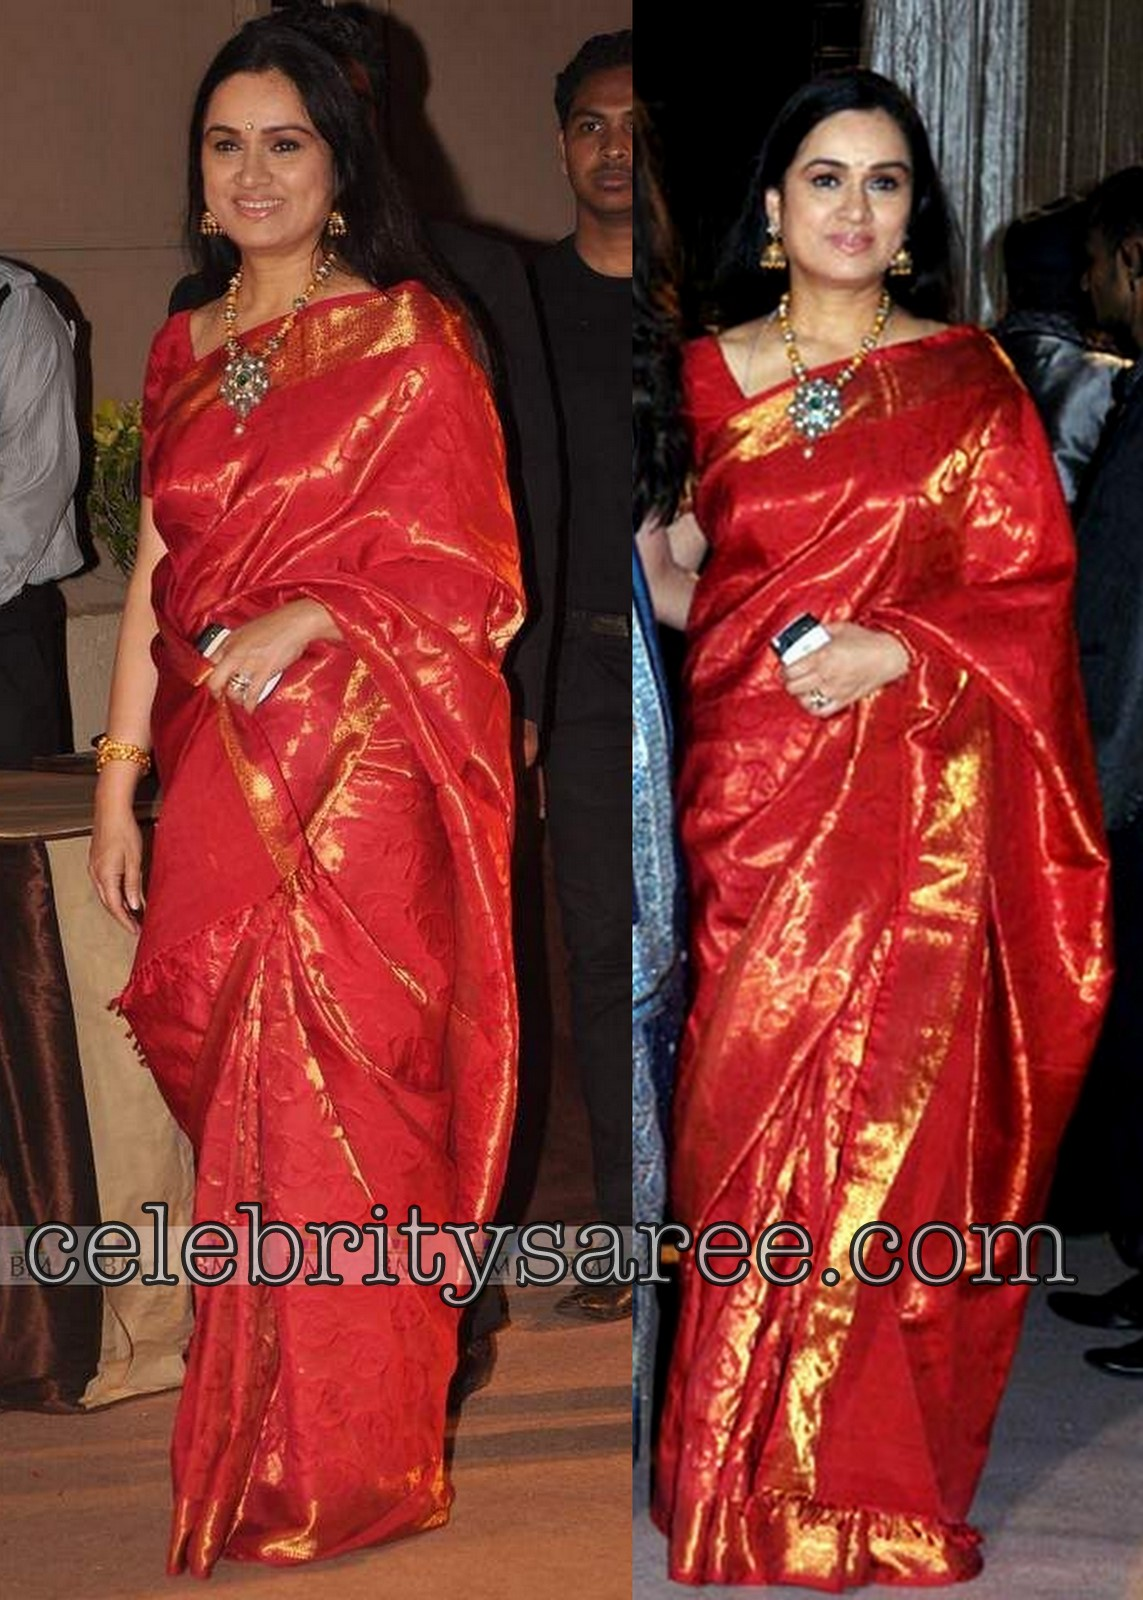 padmini kolhapure in saree - photo #27